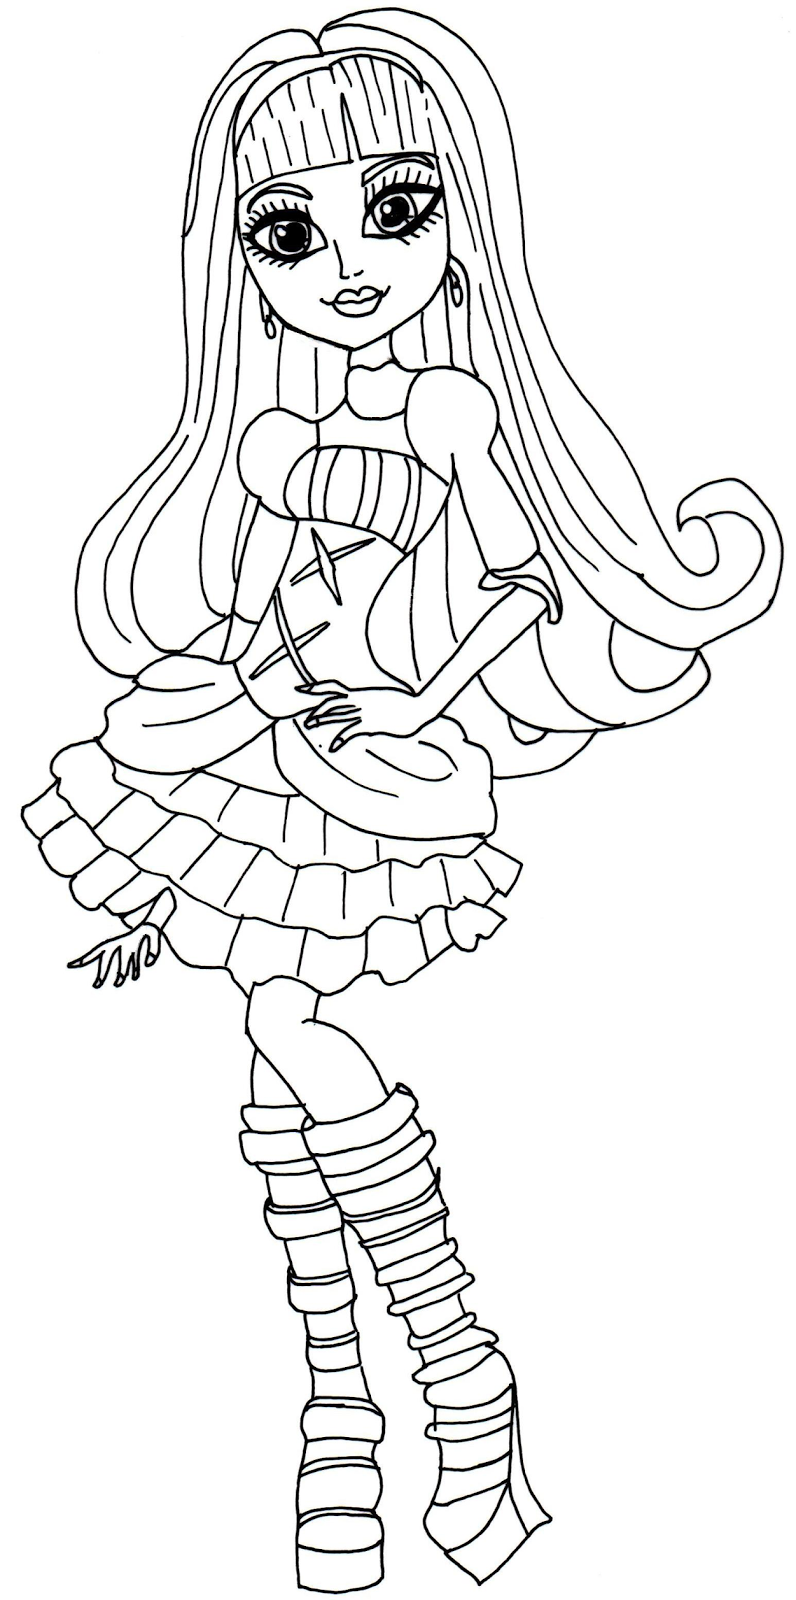 Free Printable Monster High Coloring Pages December 2013 High Coloring Pages To Print Out